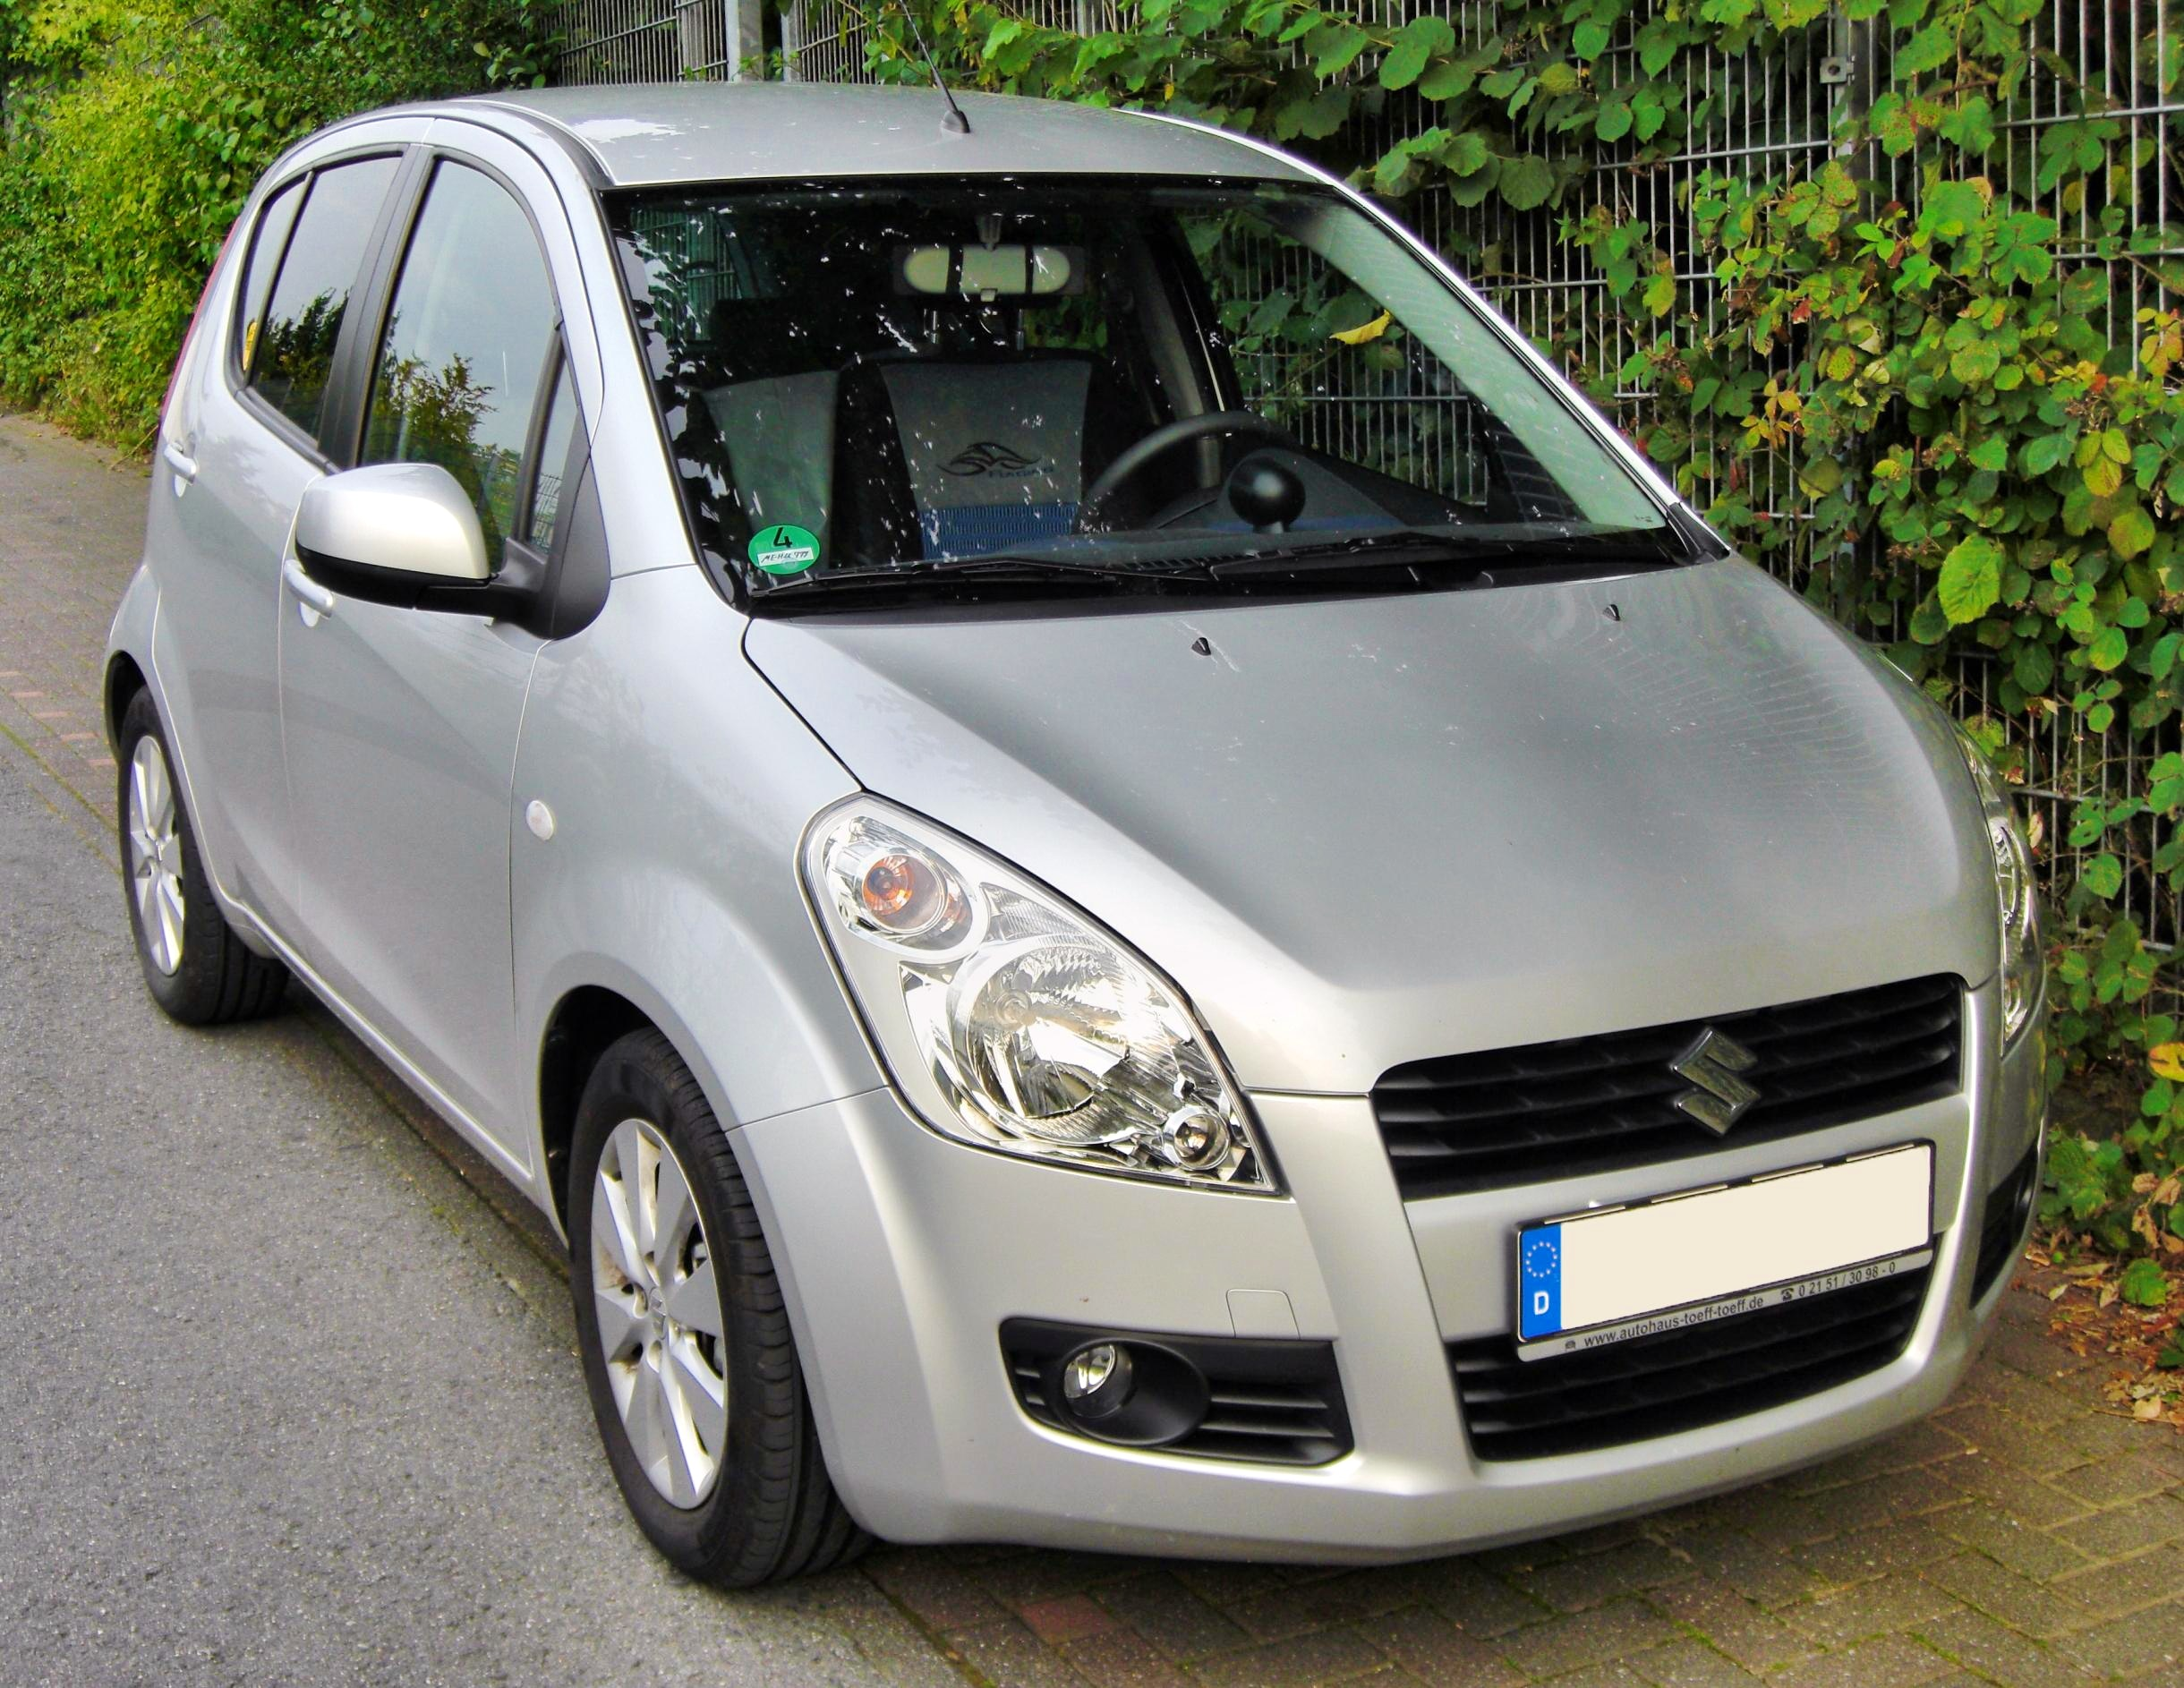 SUZUKI SWIFT, 2010, Essence - Citadine Montpellier (34)